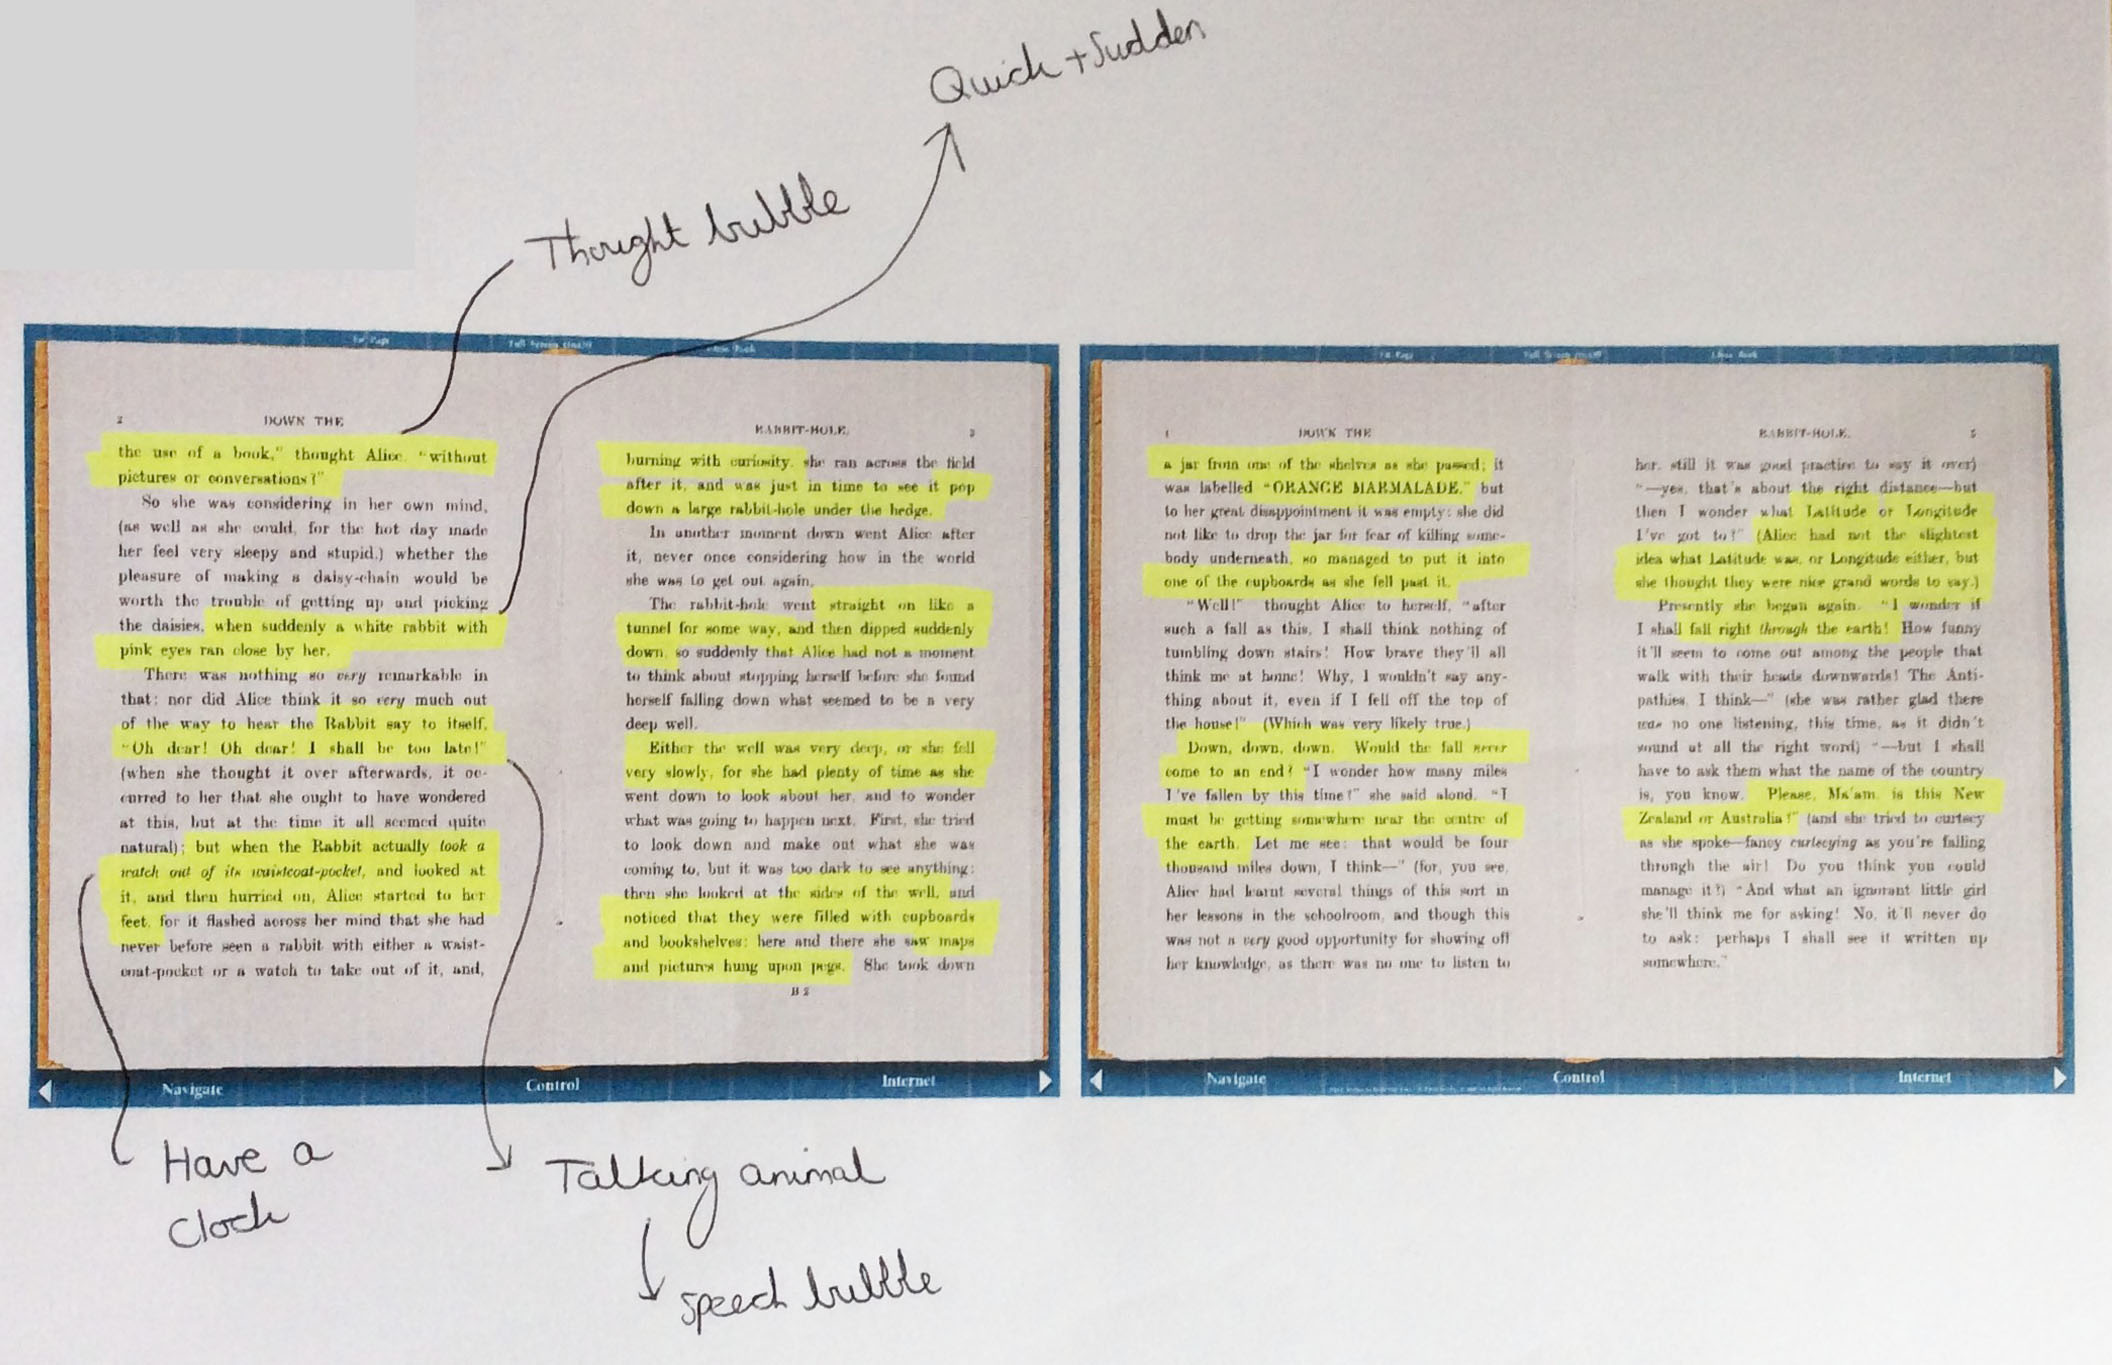 The Seventh and Eighth Pages of the Book Analysed